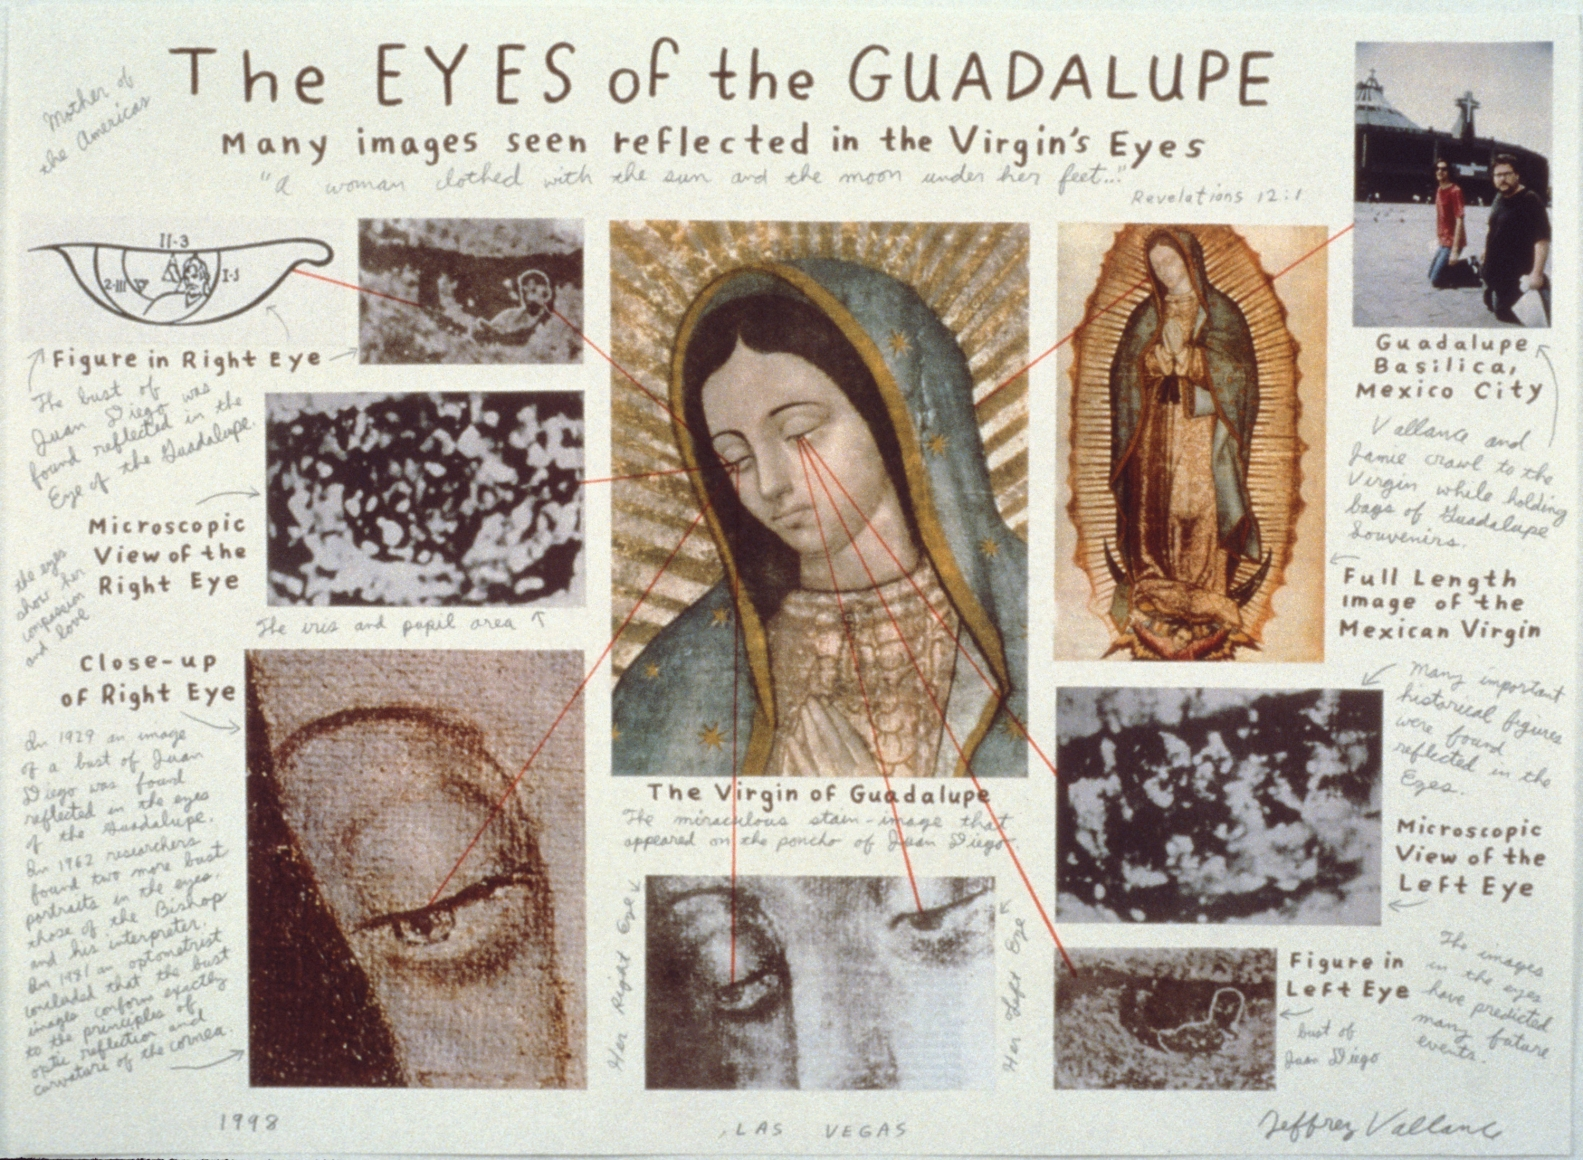 JEFFREY VALLANCE, The Eyes of the Guadalupe